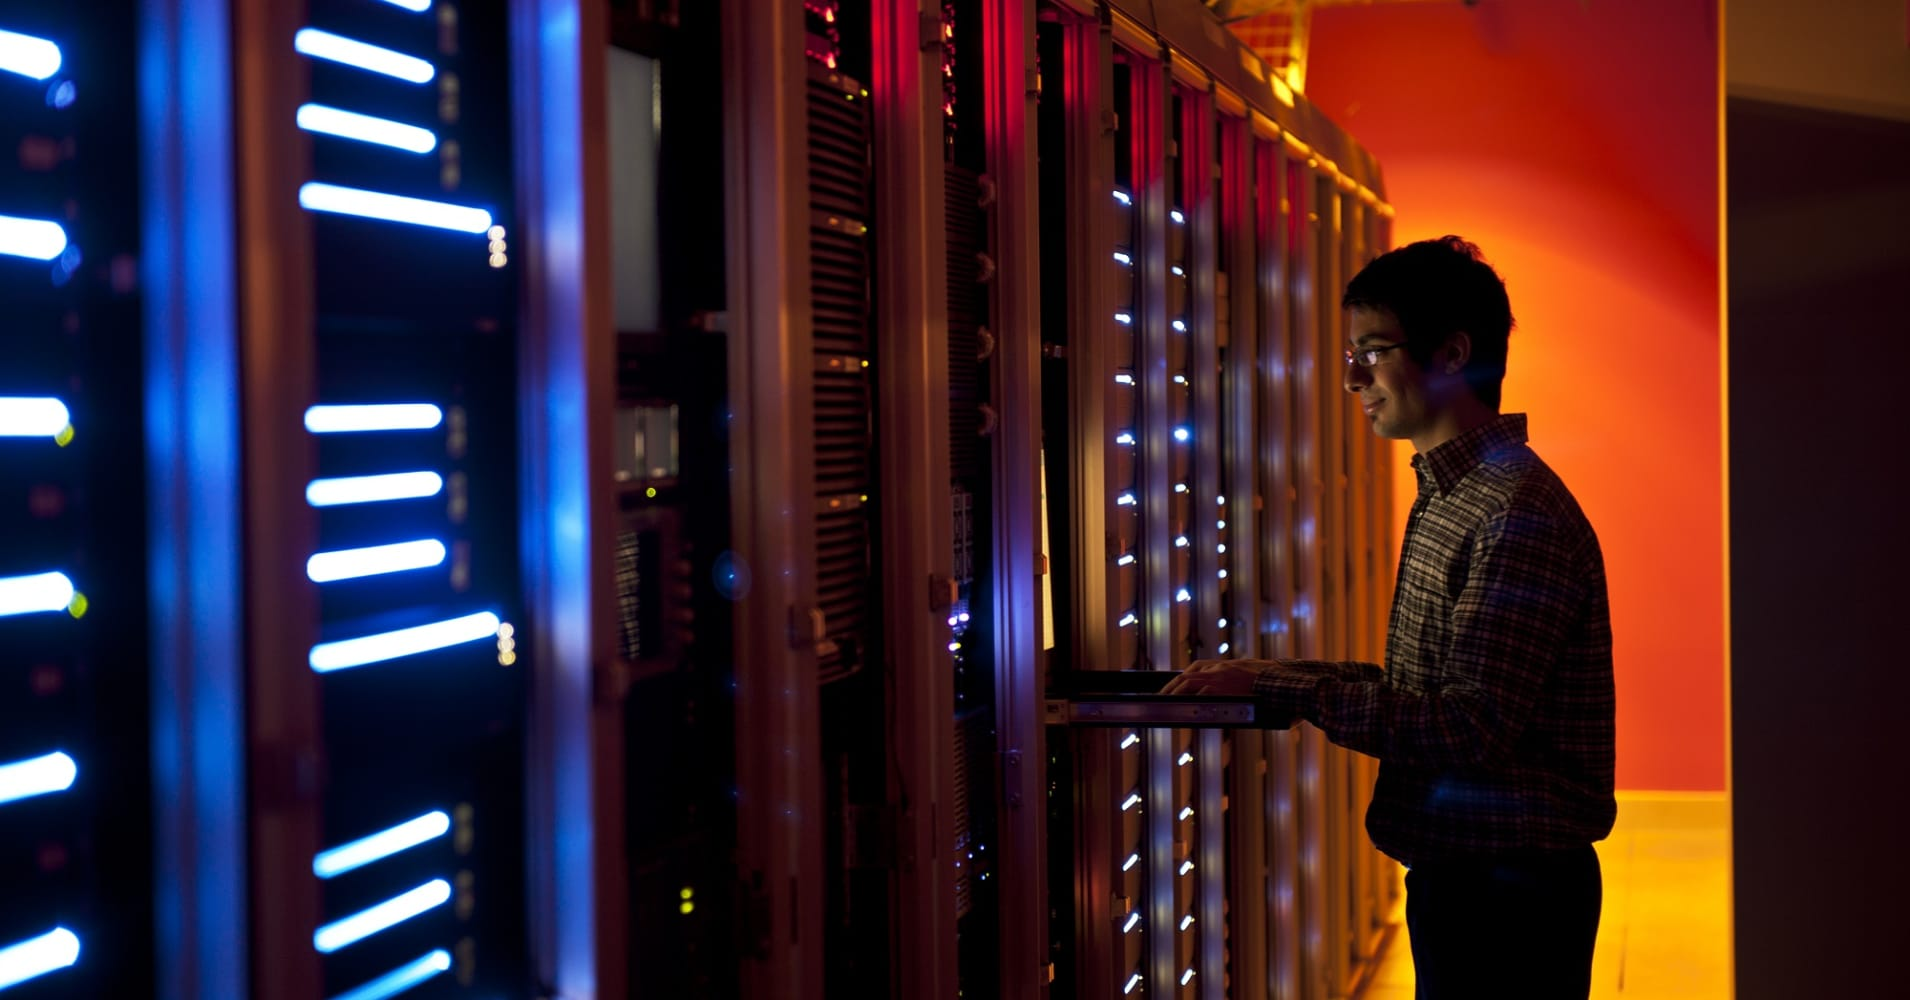 Systems engineer configuring servers in data center.